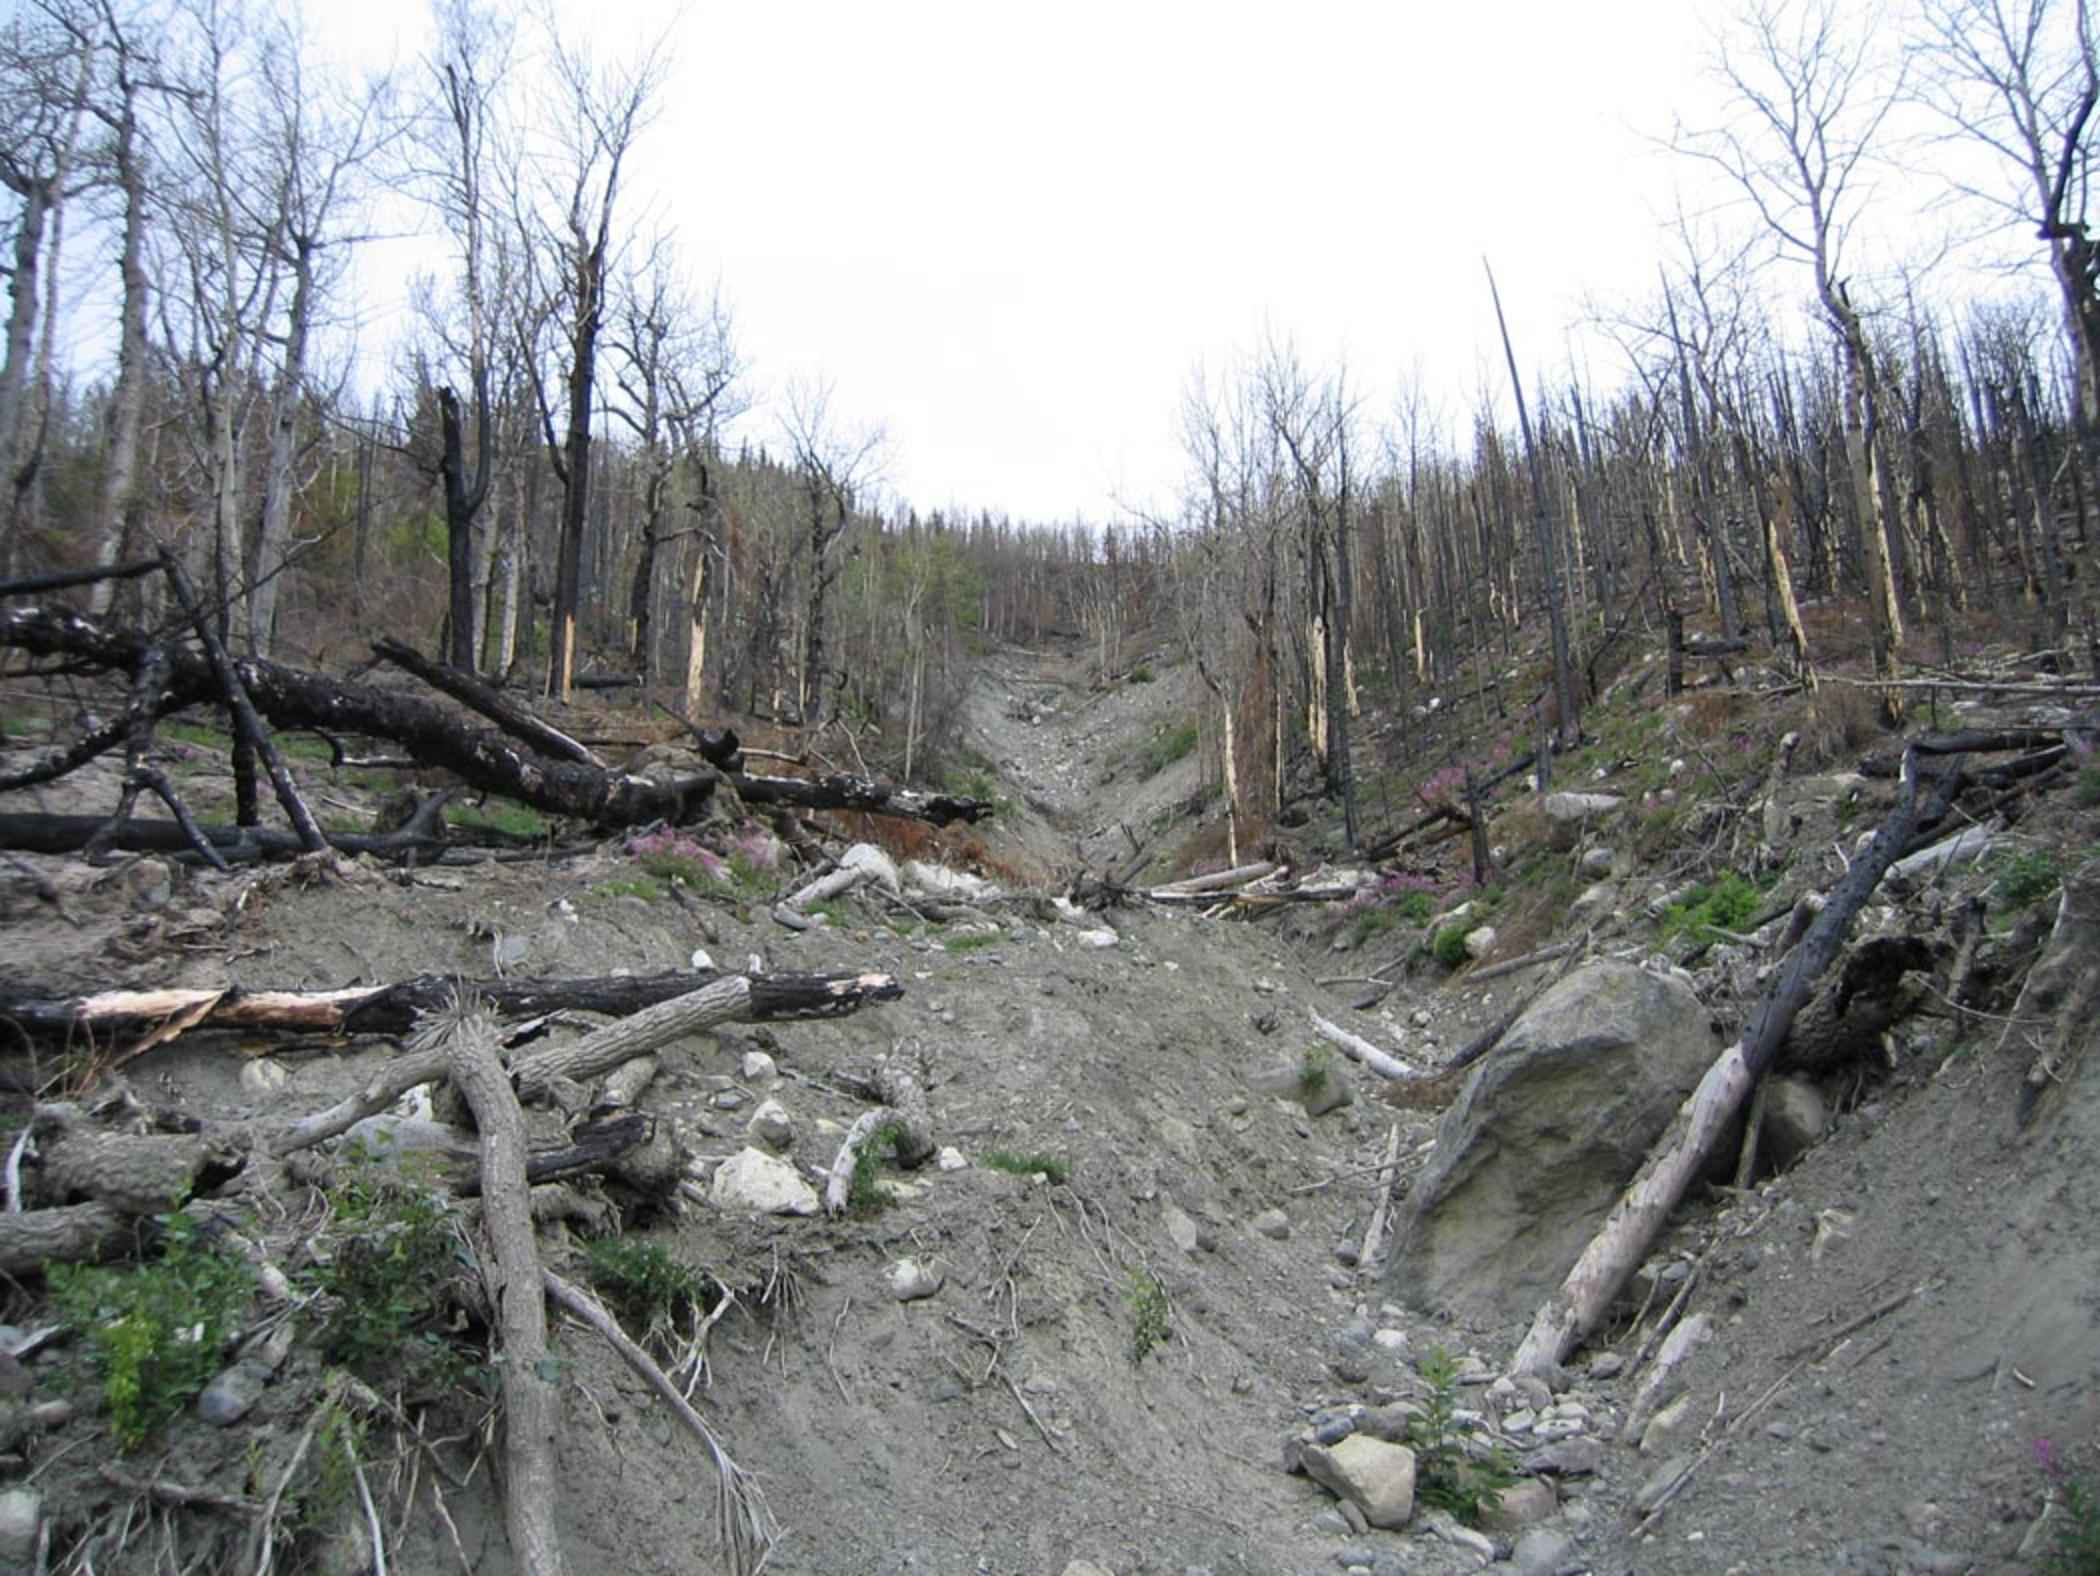 File:Forest after fire burn.jpg - Wikimedia Commons